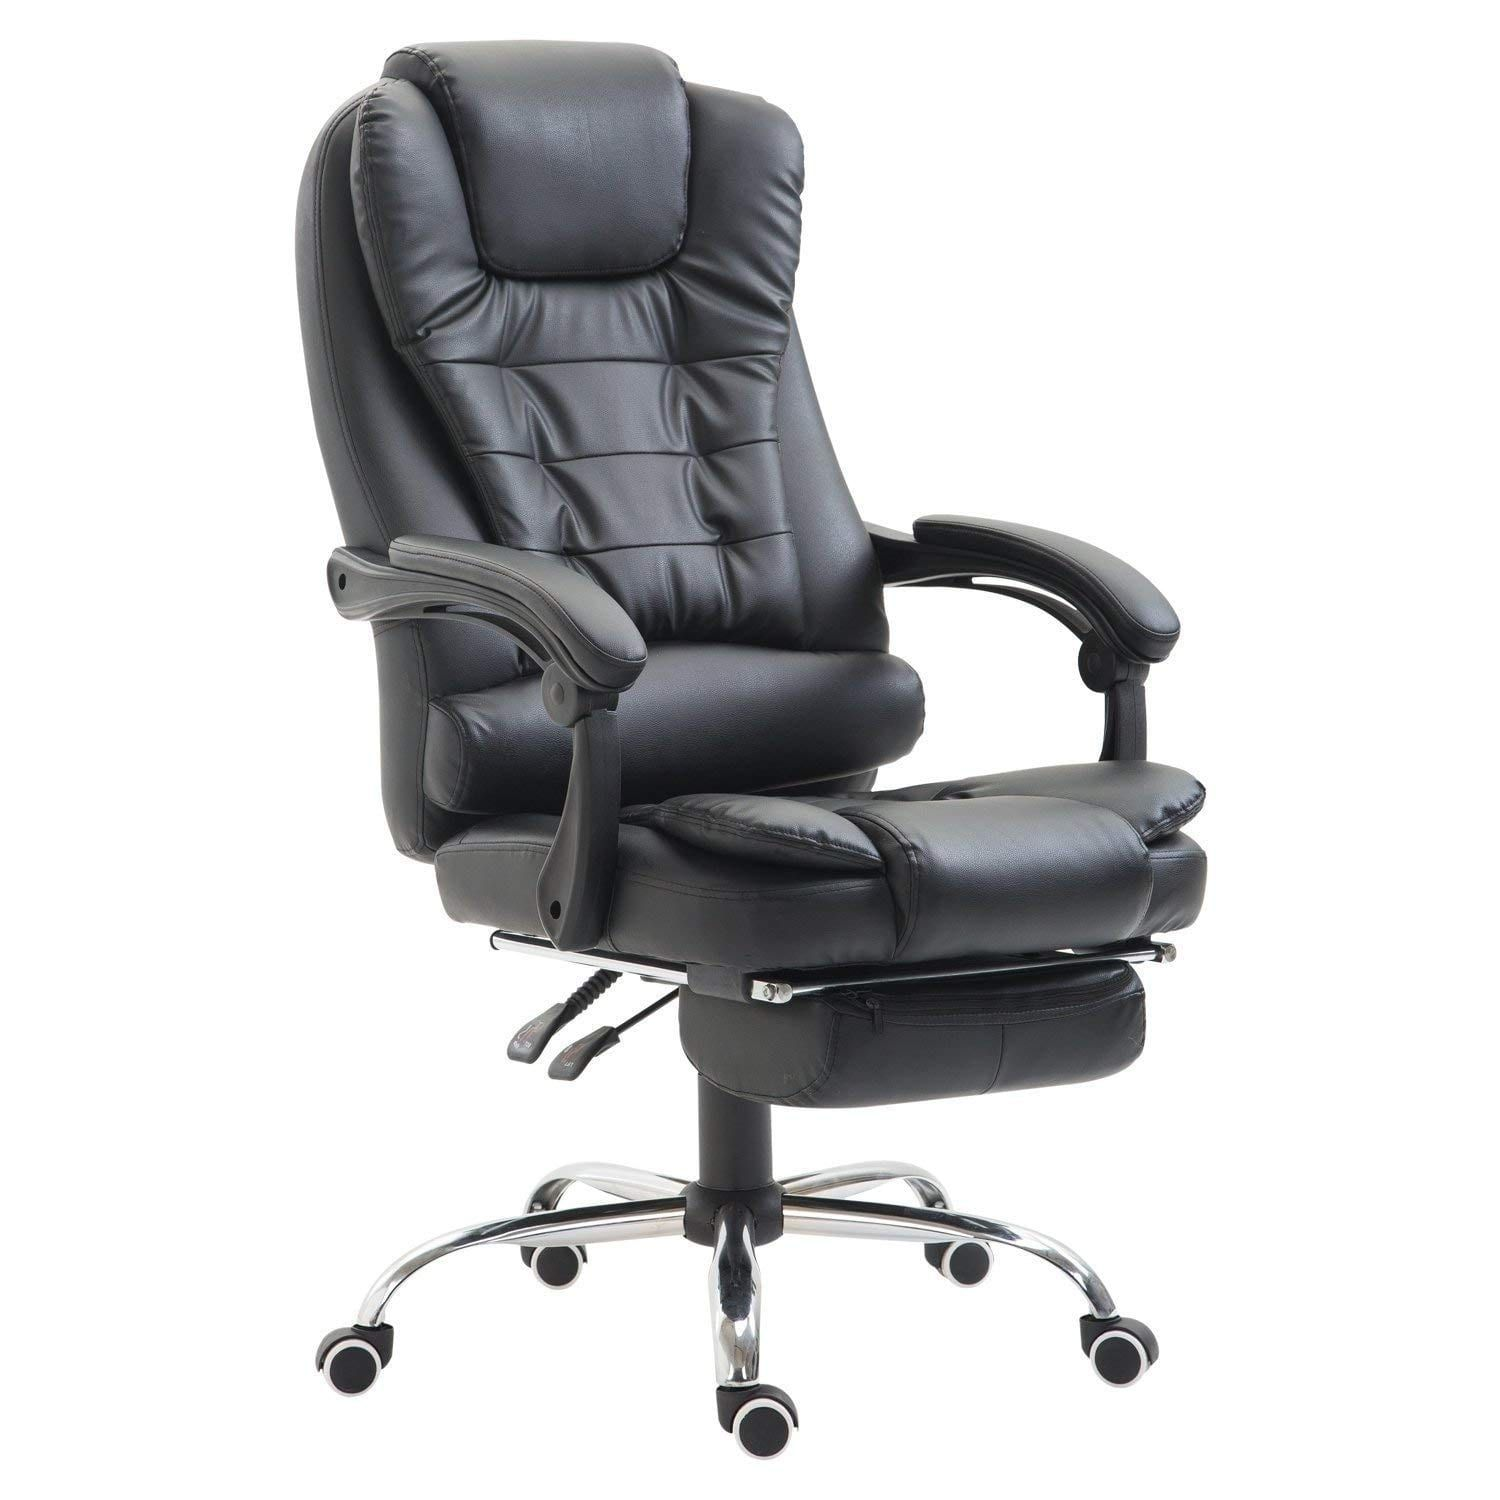 Homcom High Back Reclining Pu Leather Executive Home Office Chair